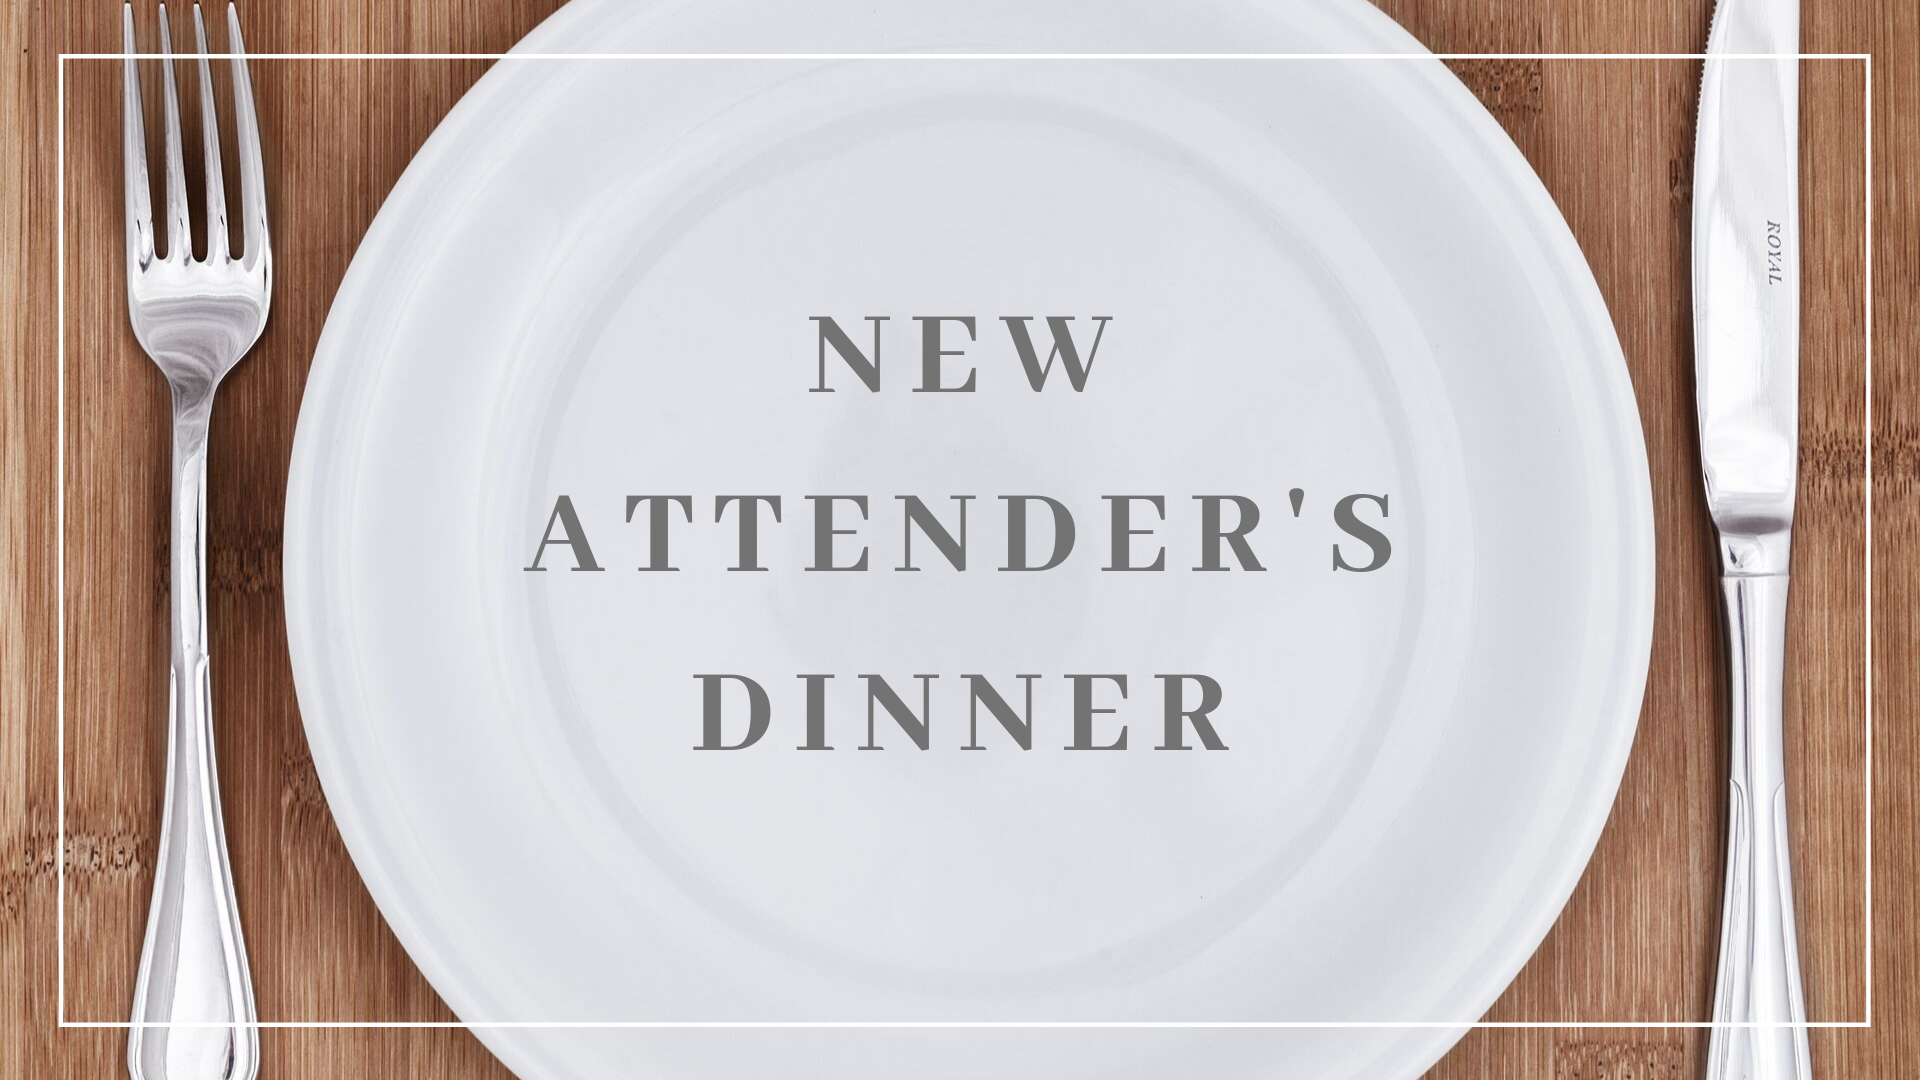 Copy of New Attender's Dinner.png